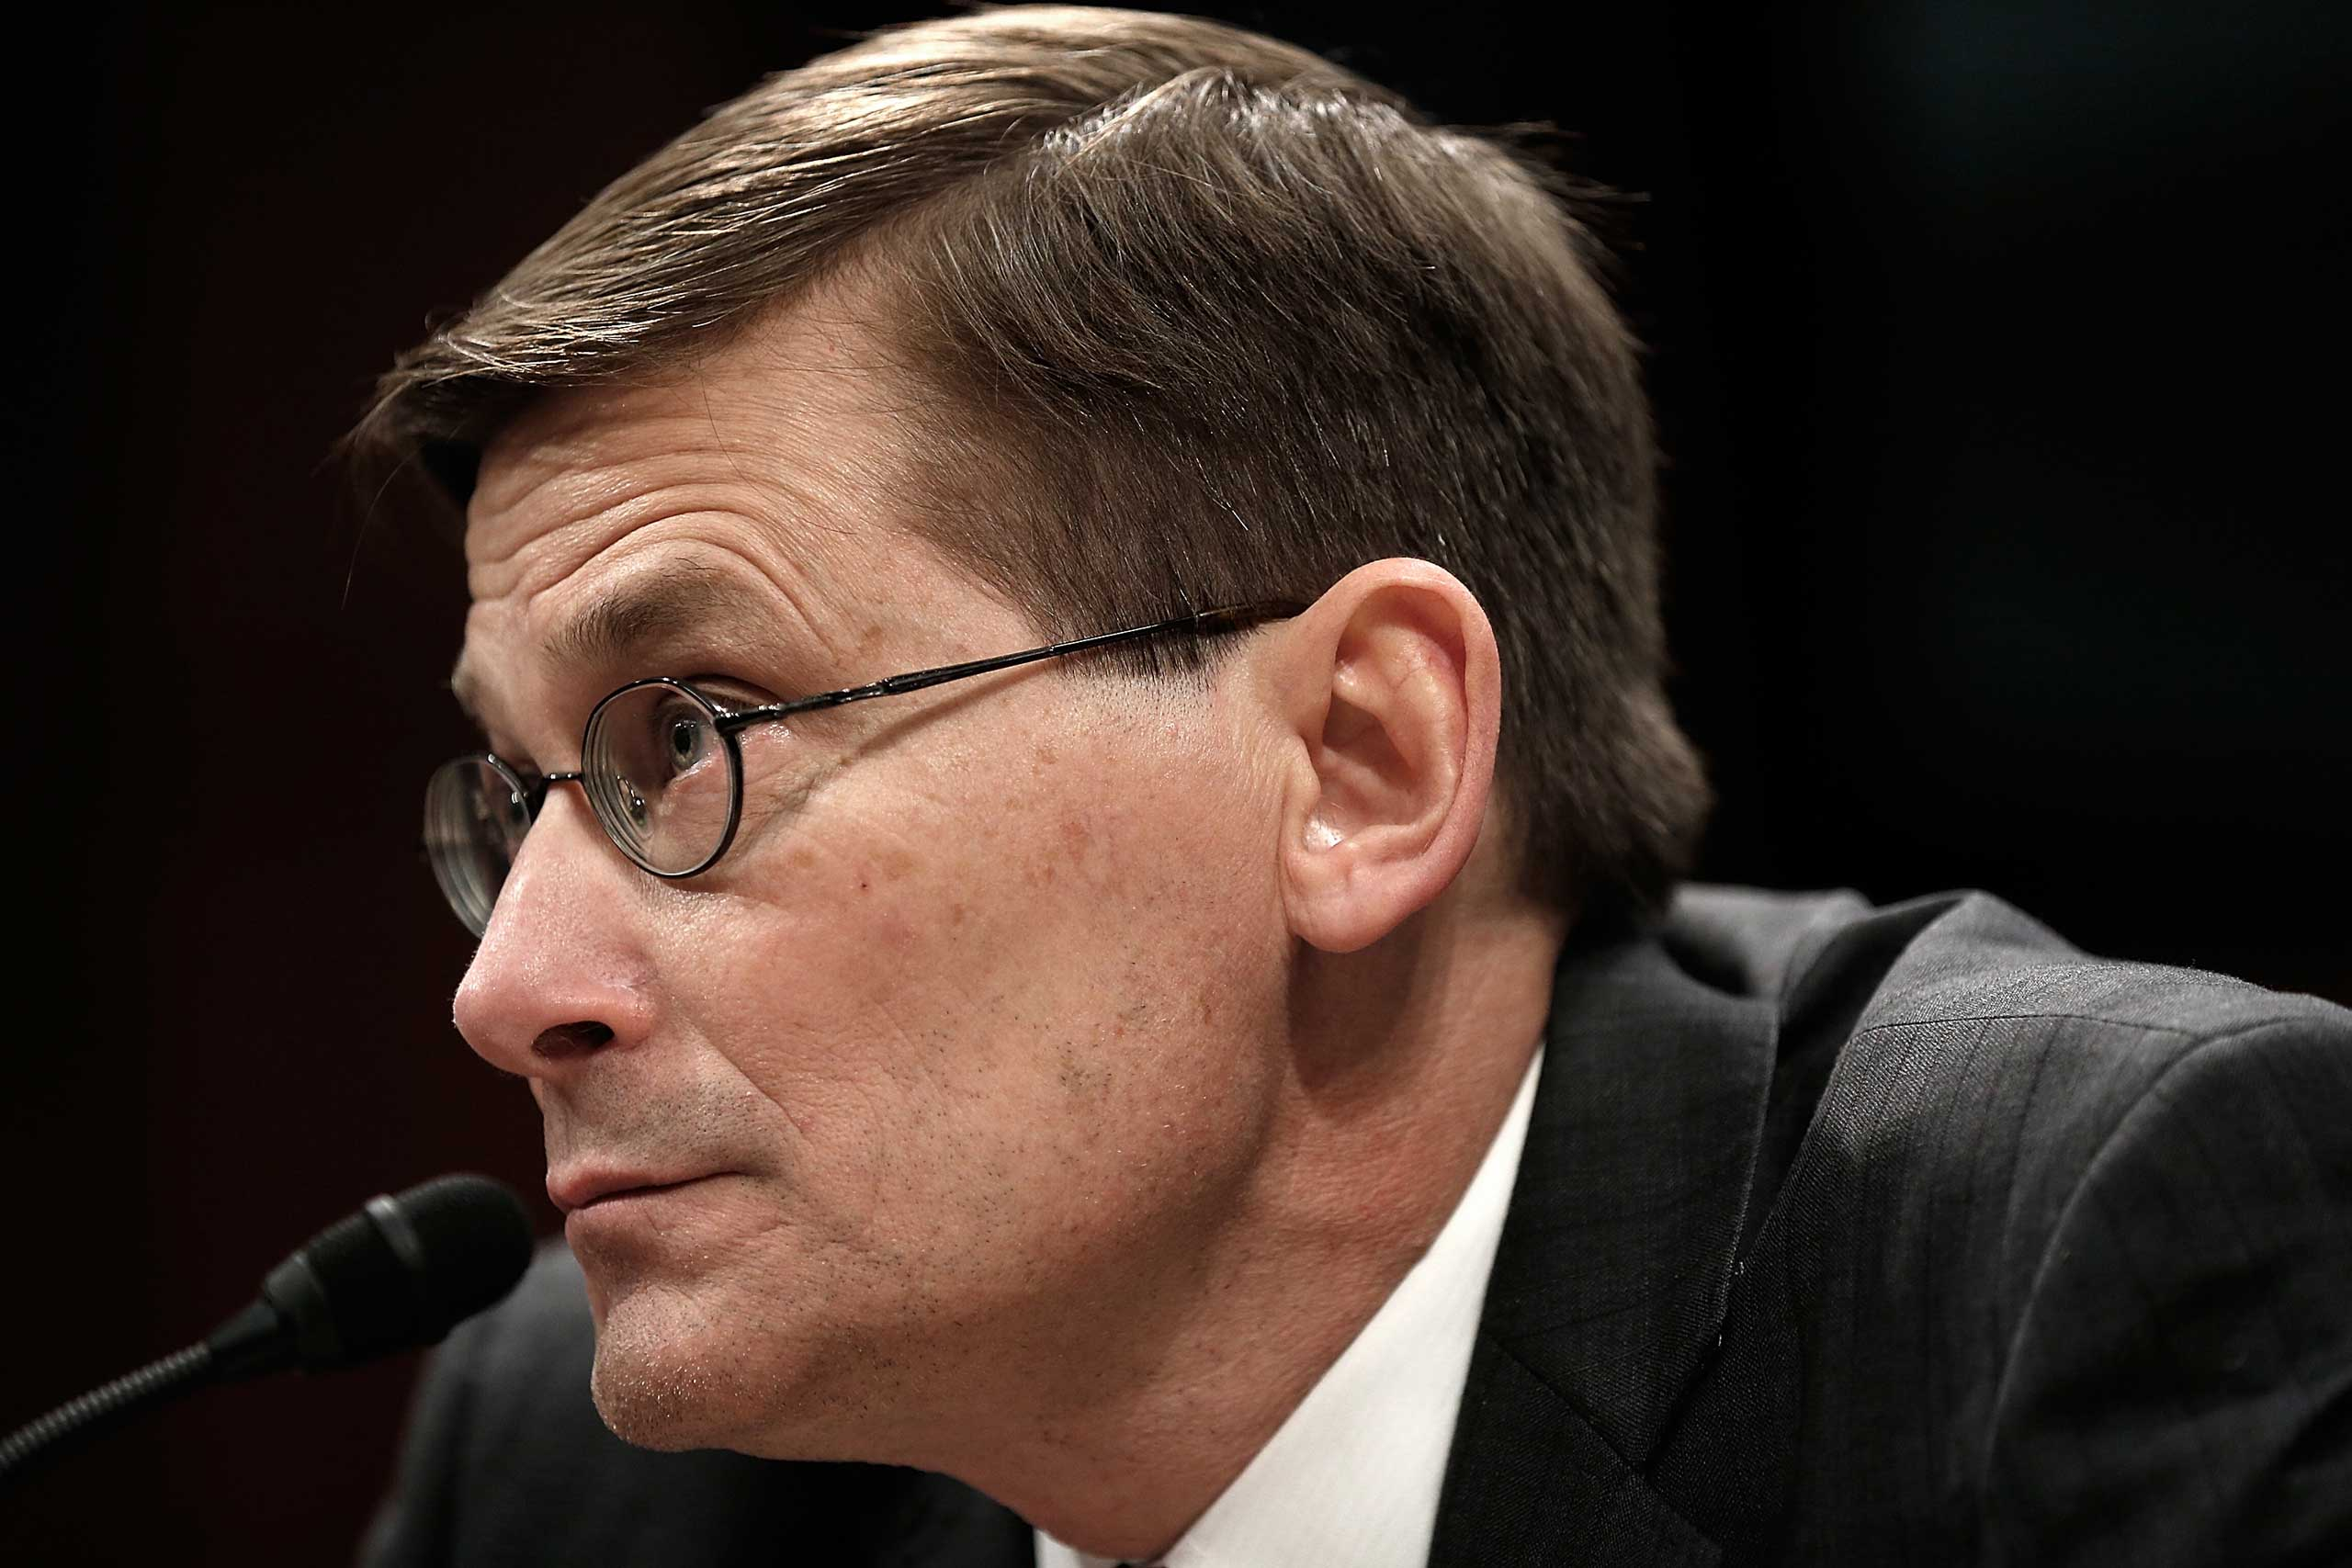 Former Deputy CIA Director Michael Morell testifies before the House Select Intelligence Committee April 2, 2014 in Washington, DC.